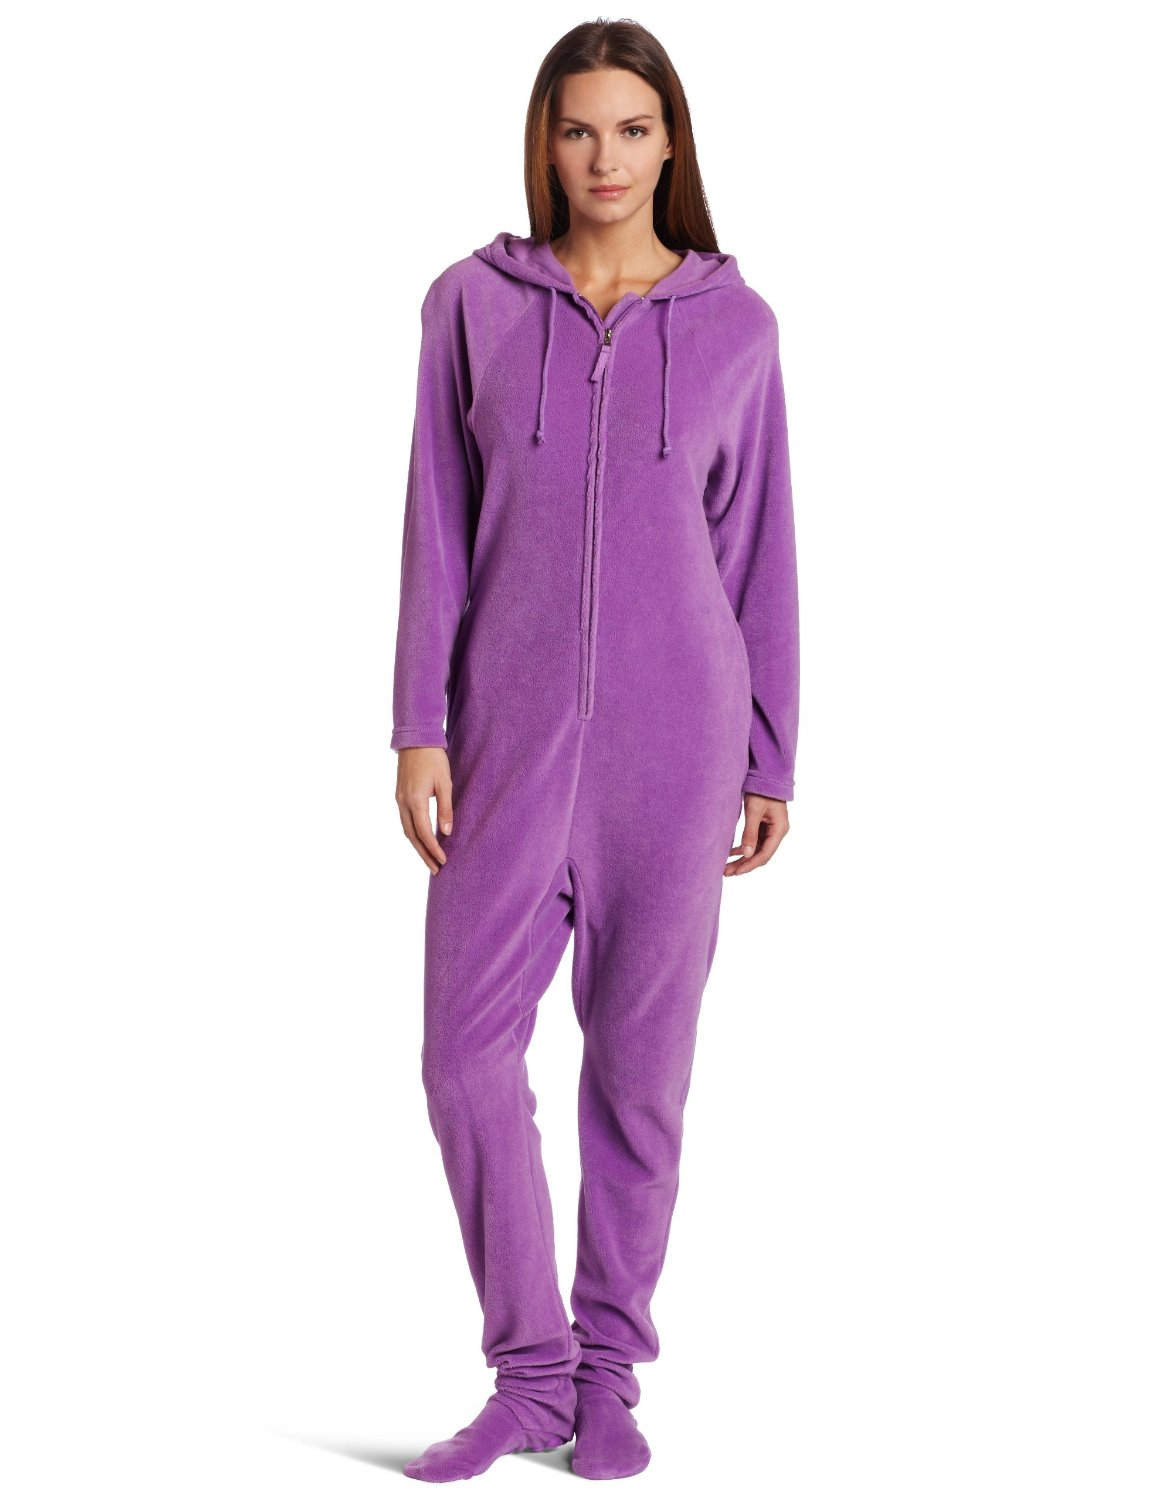 Footed pajamas, onsies and union suits that have a rear drop seat, or butt flap. Since , Big Feet Pajama Co. has offered a drop-seat option on all adult footed onesie pajamas.